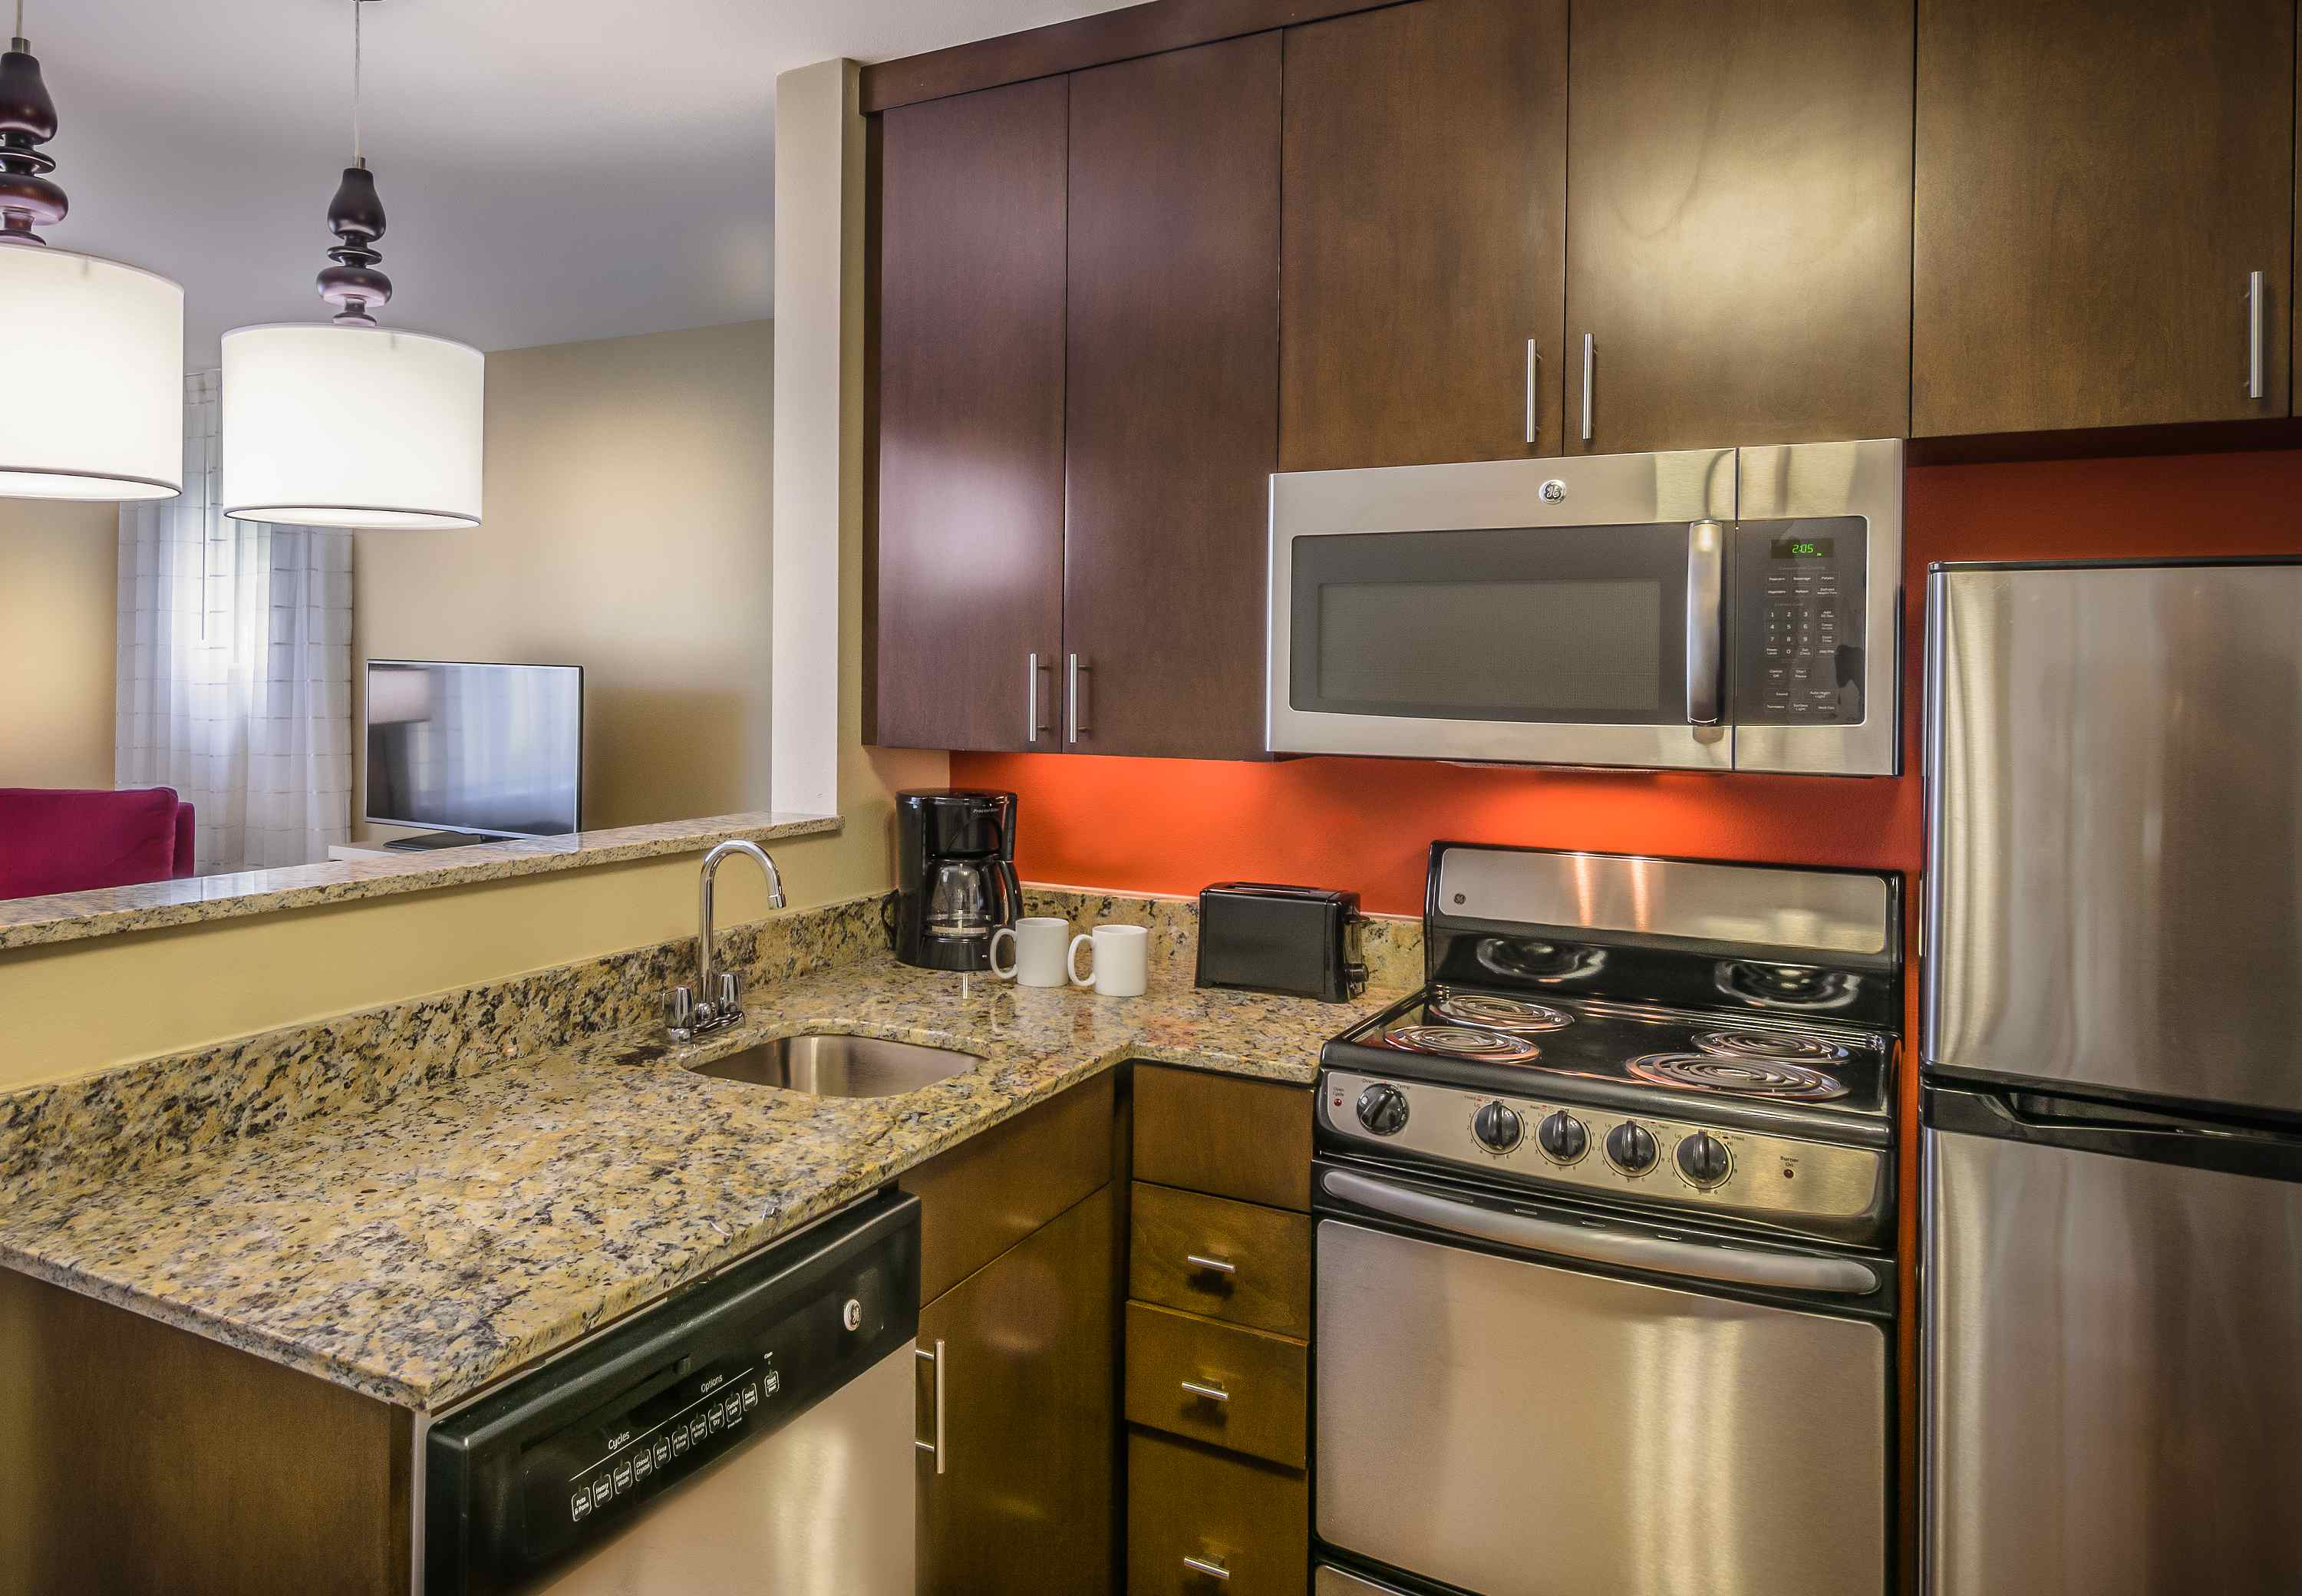 TownePlace Suites by Marriott Goldsboro image 0